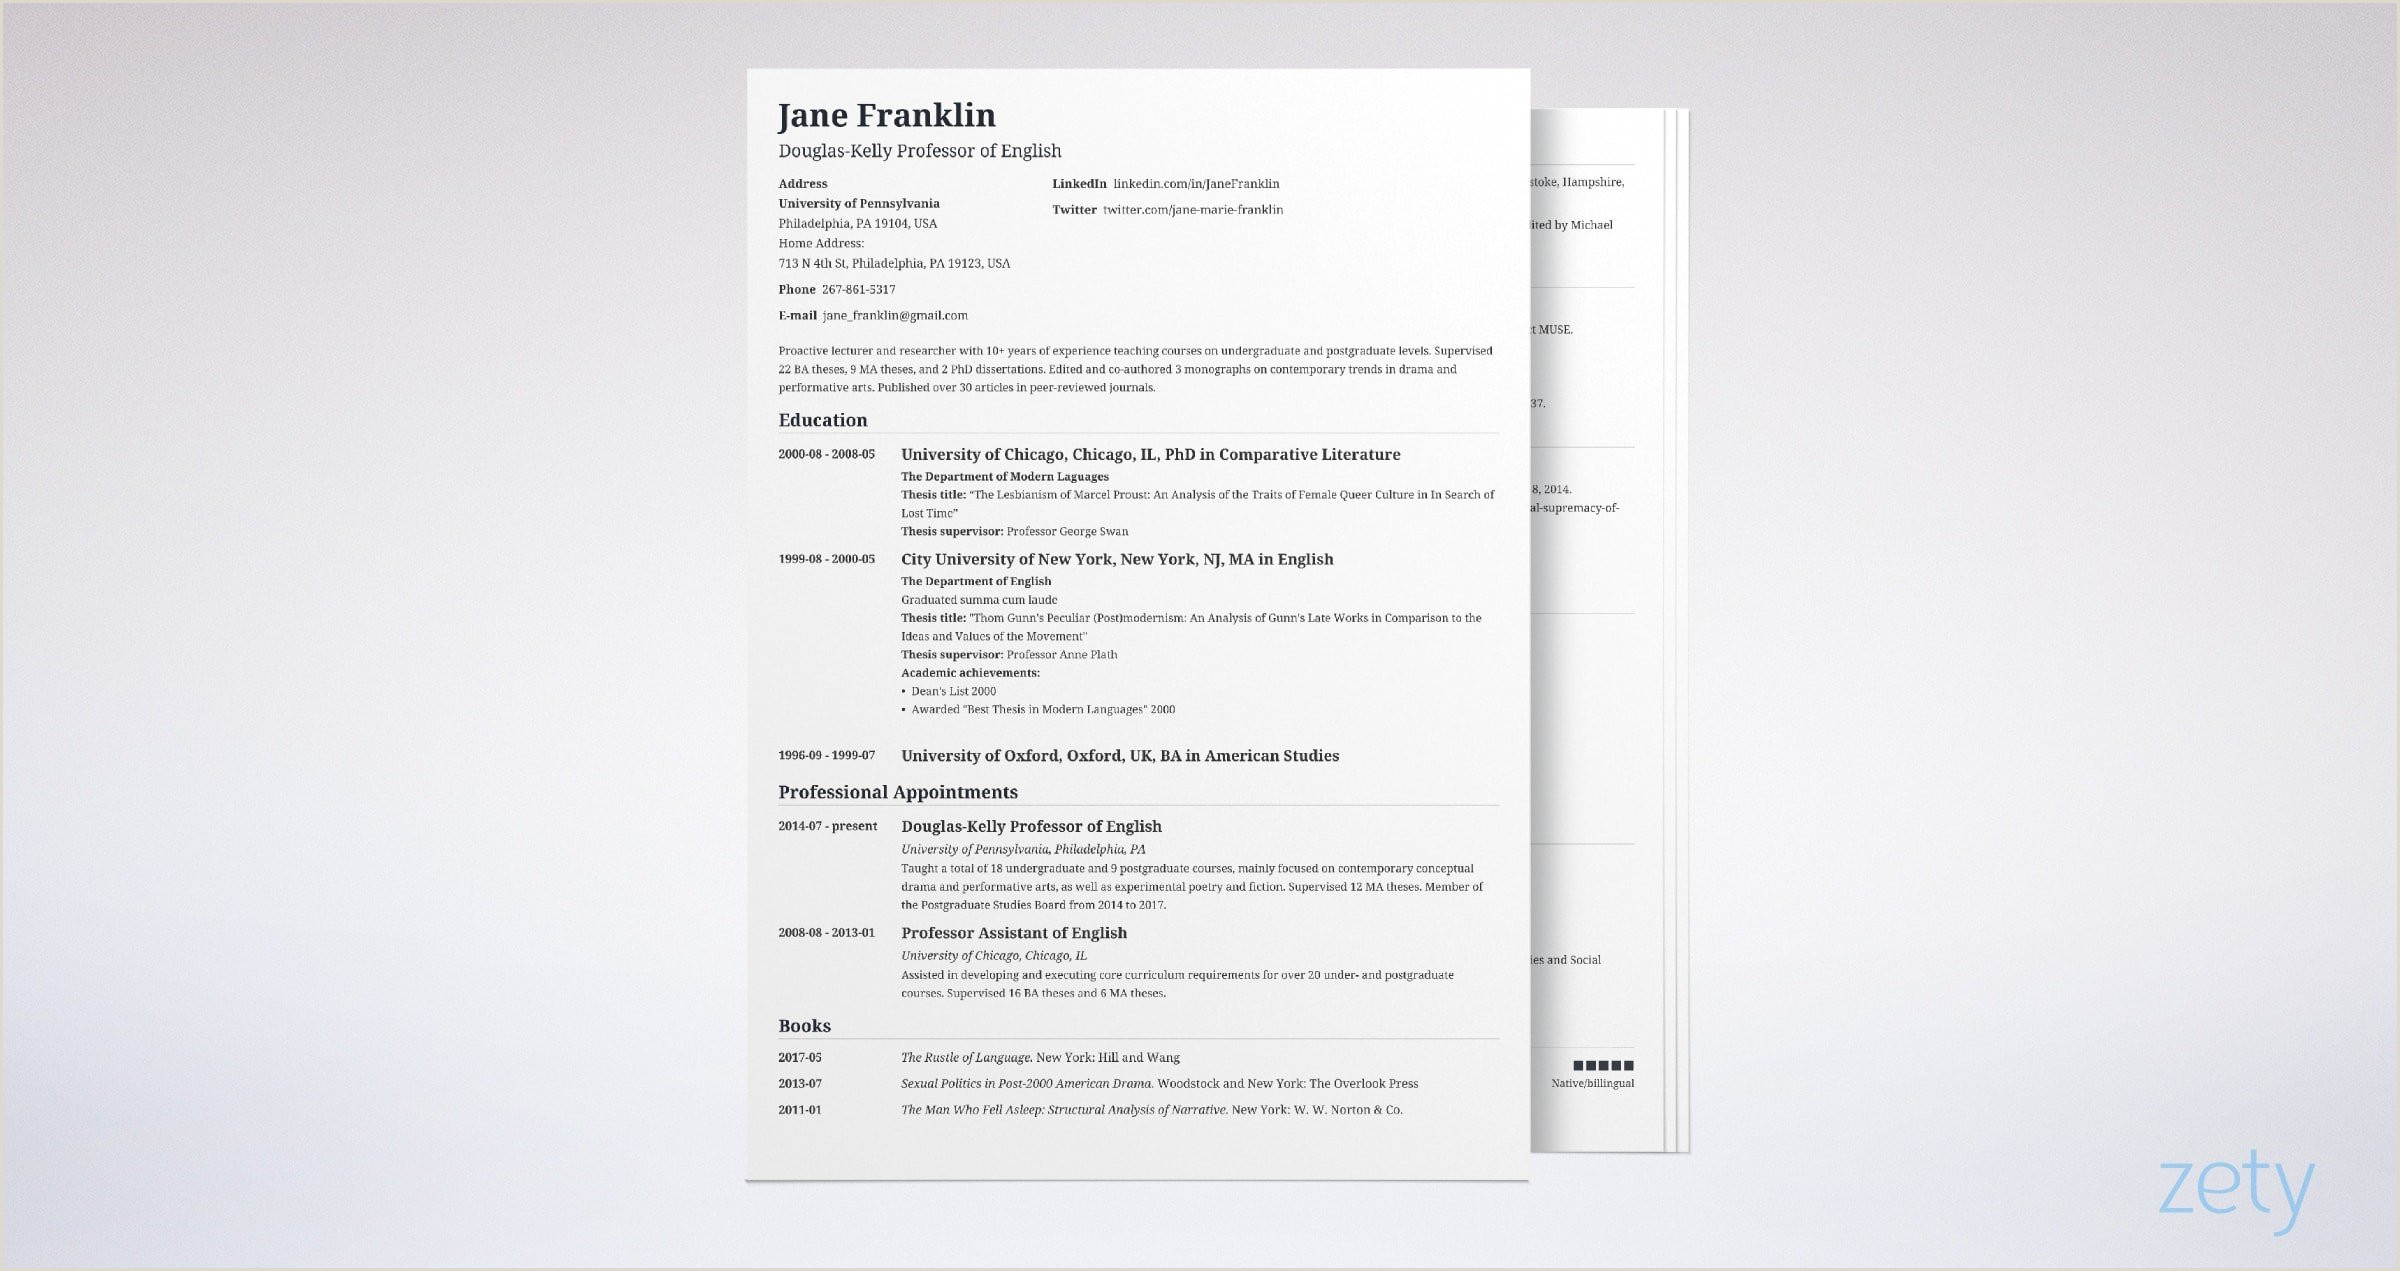 Cv format for Job In Educational Institutions Academic Cv Example Template & Writing Guide [with 20